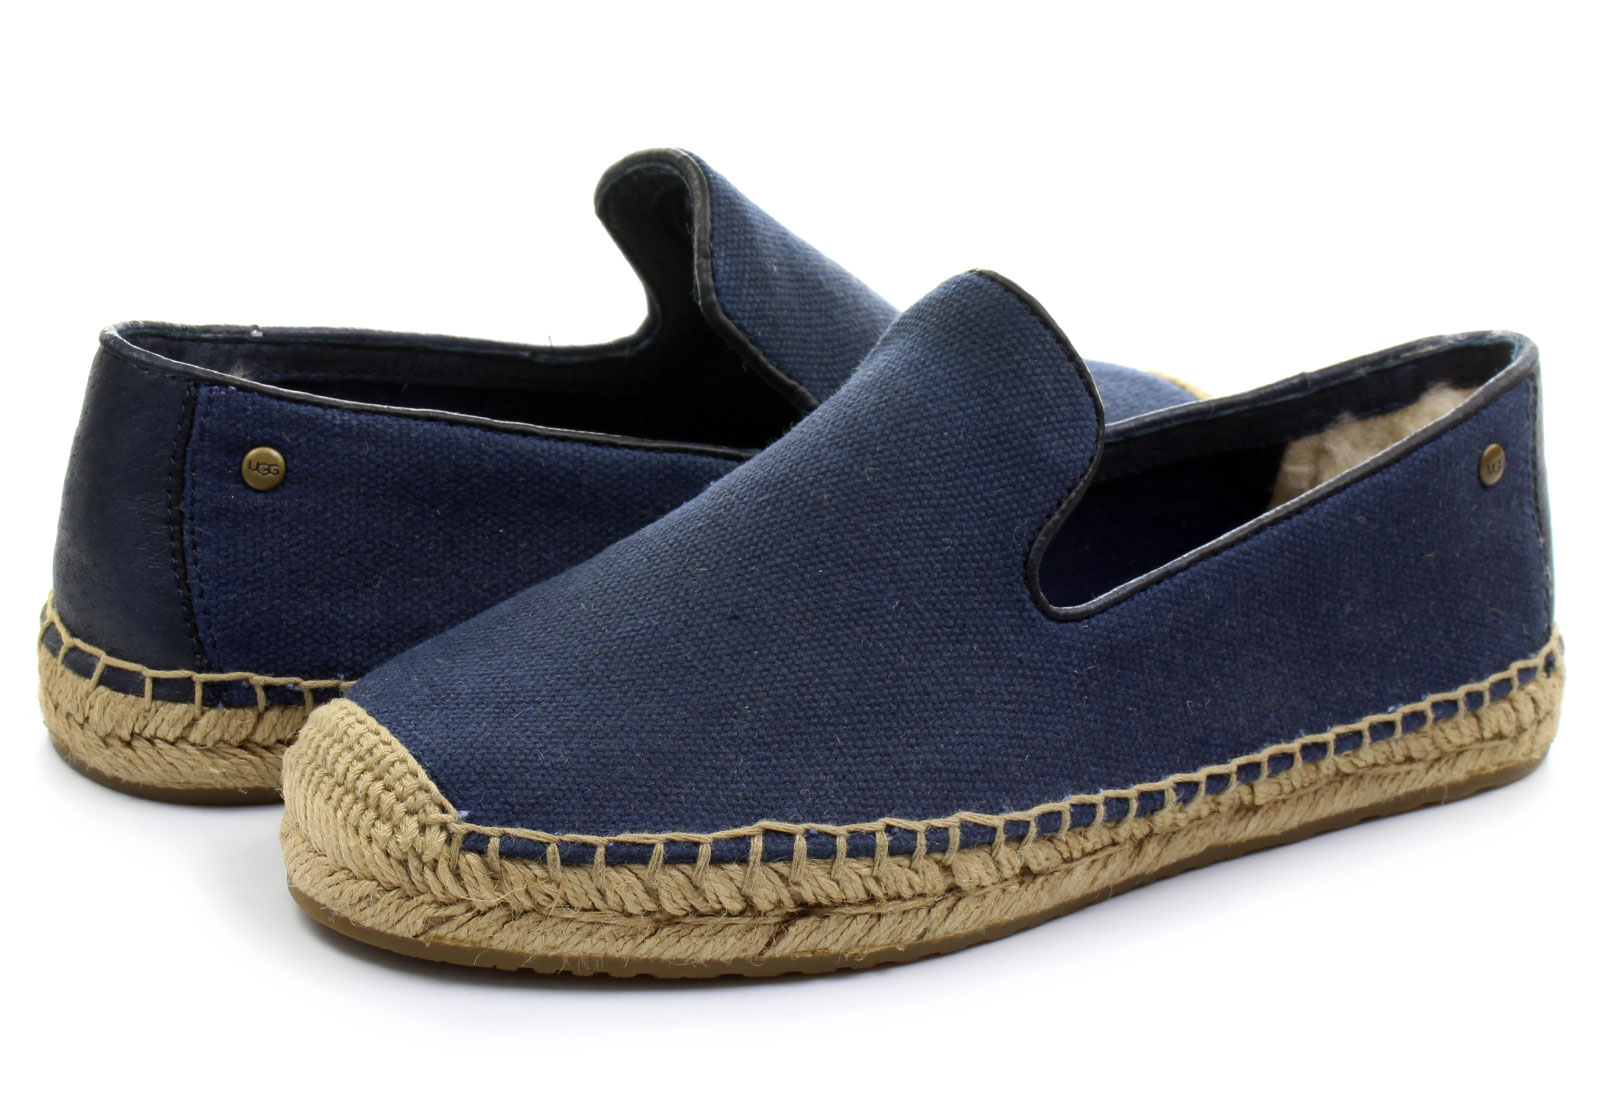 Ugg Shoes Sandrinne